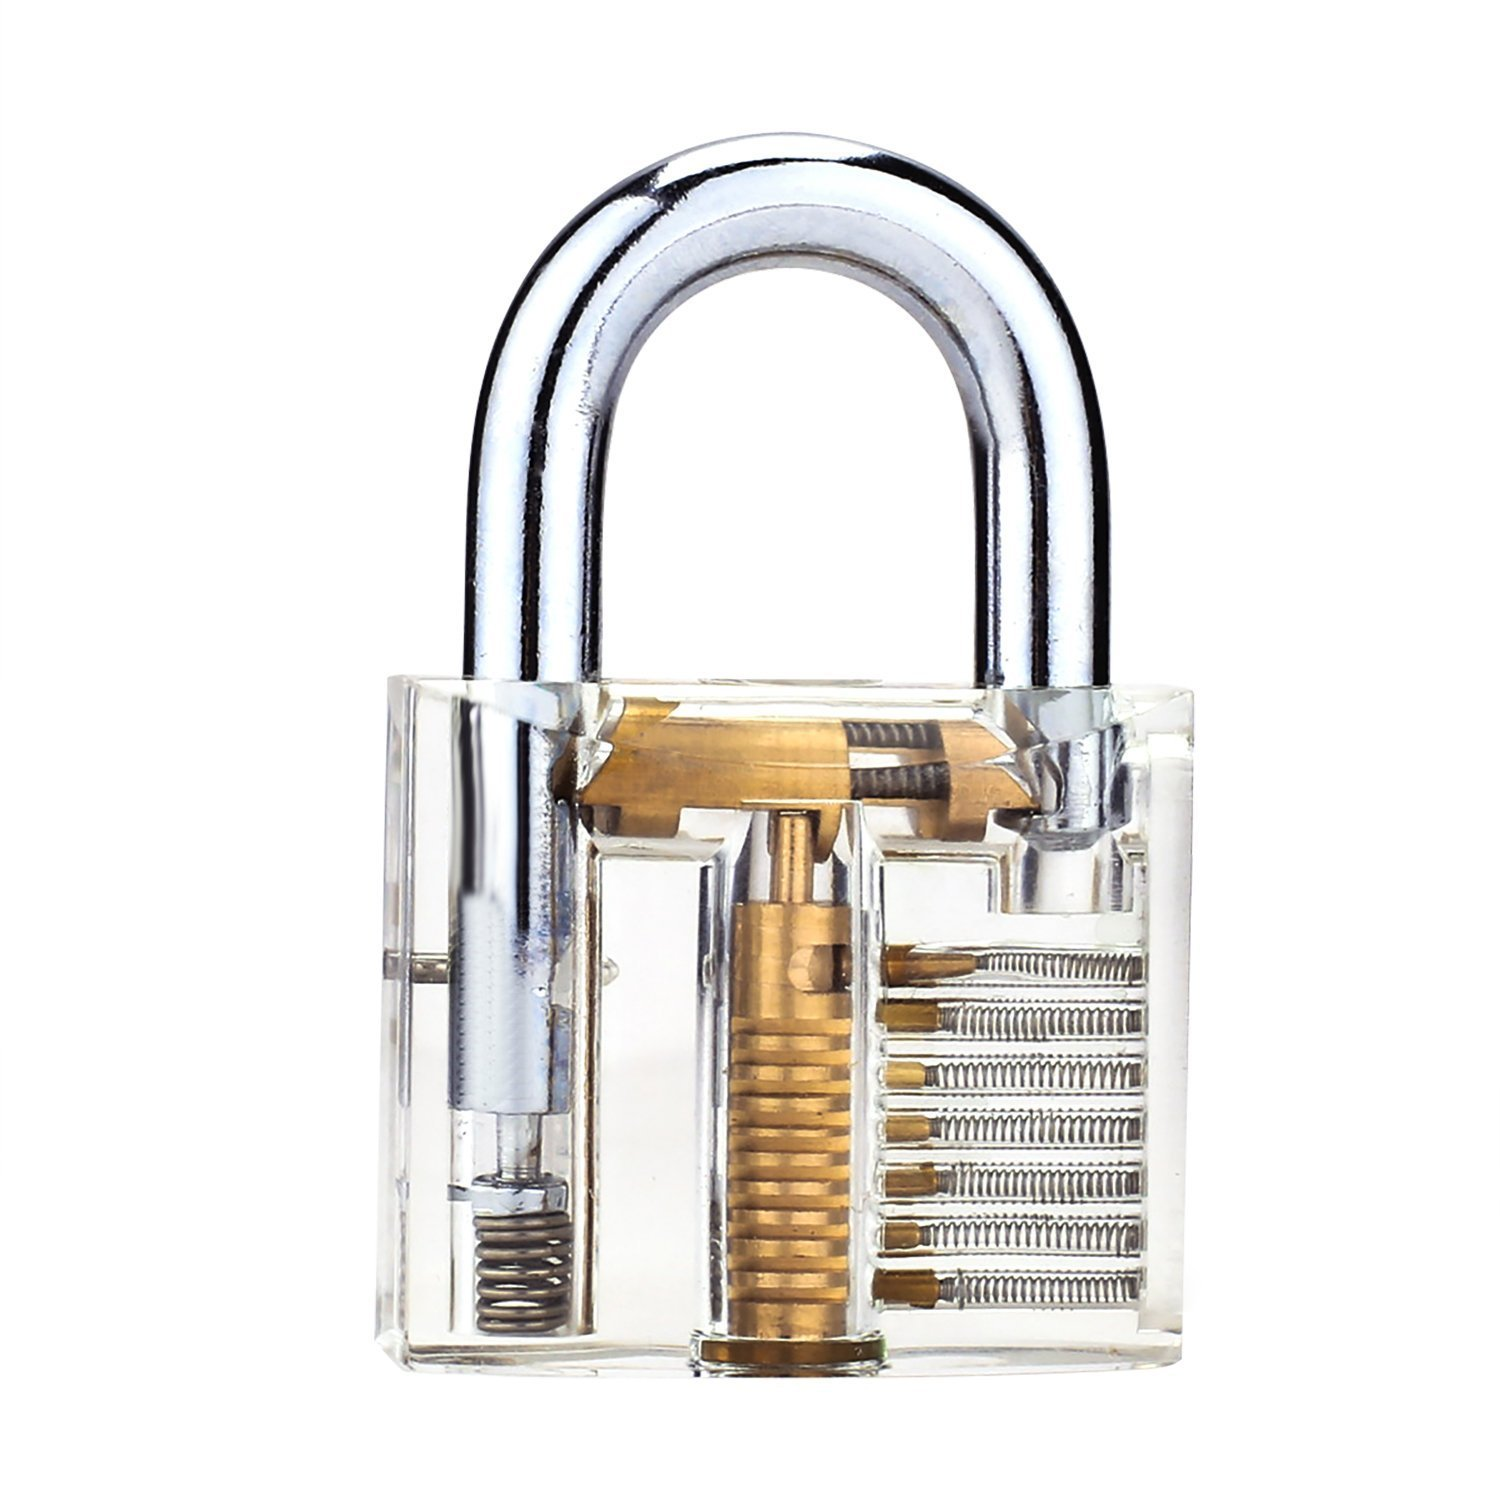 mazu professional practice lock set transparent cutaway crystal